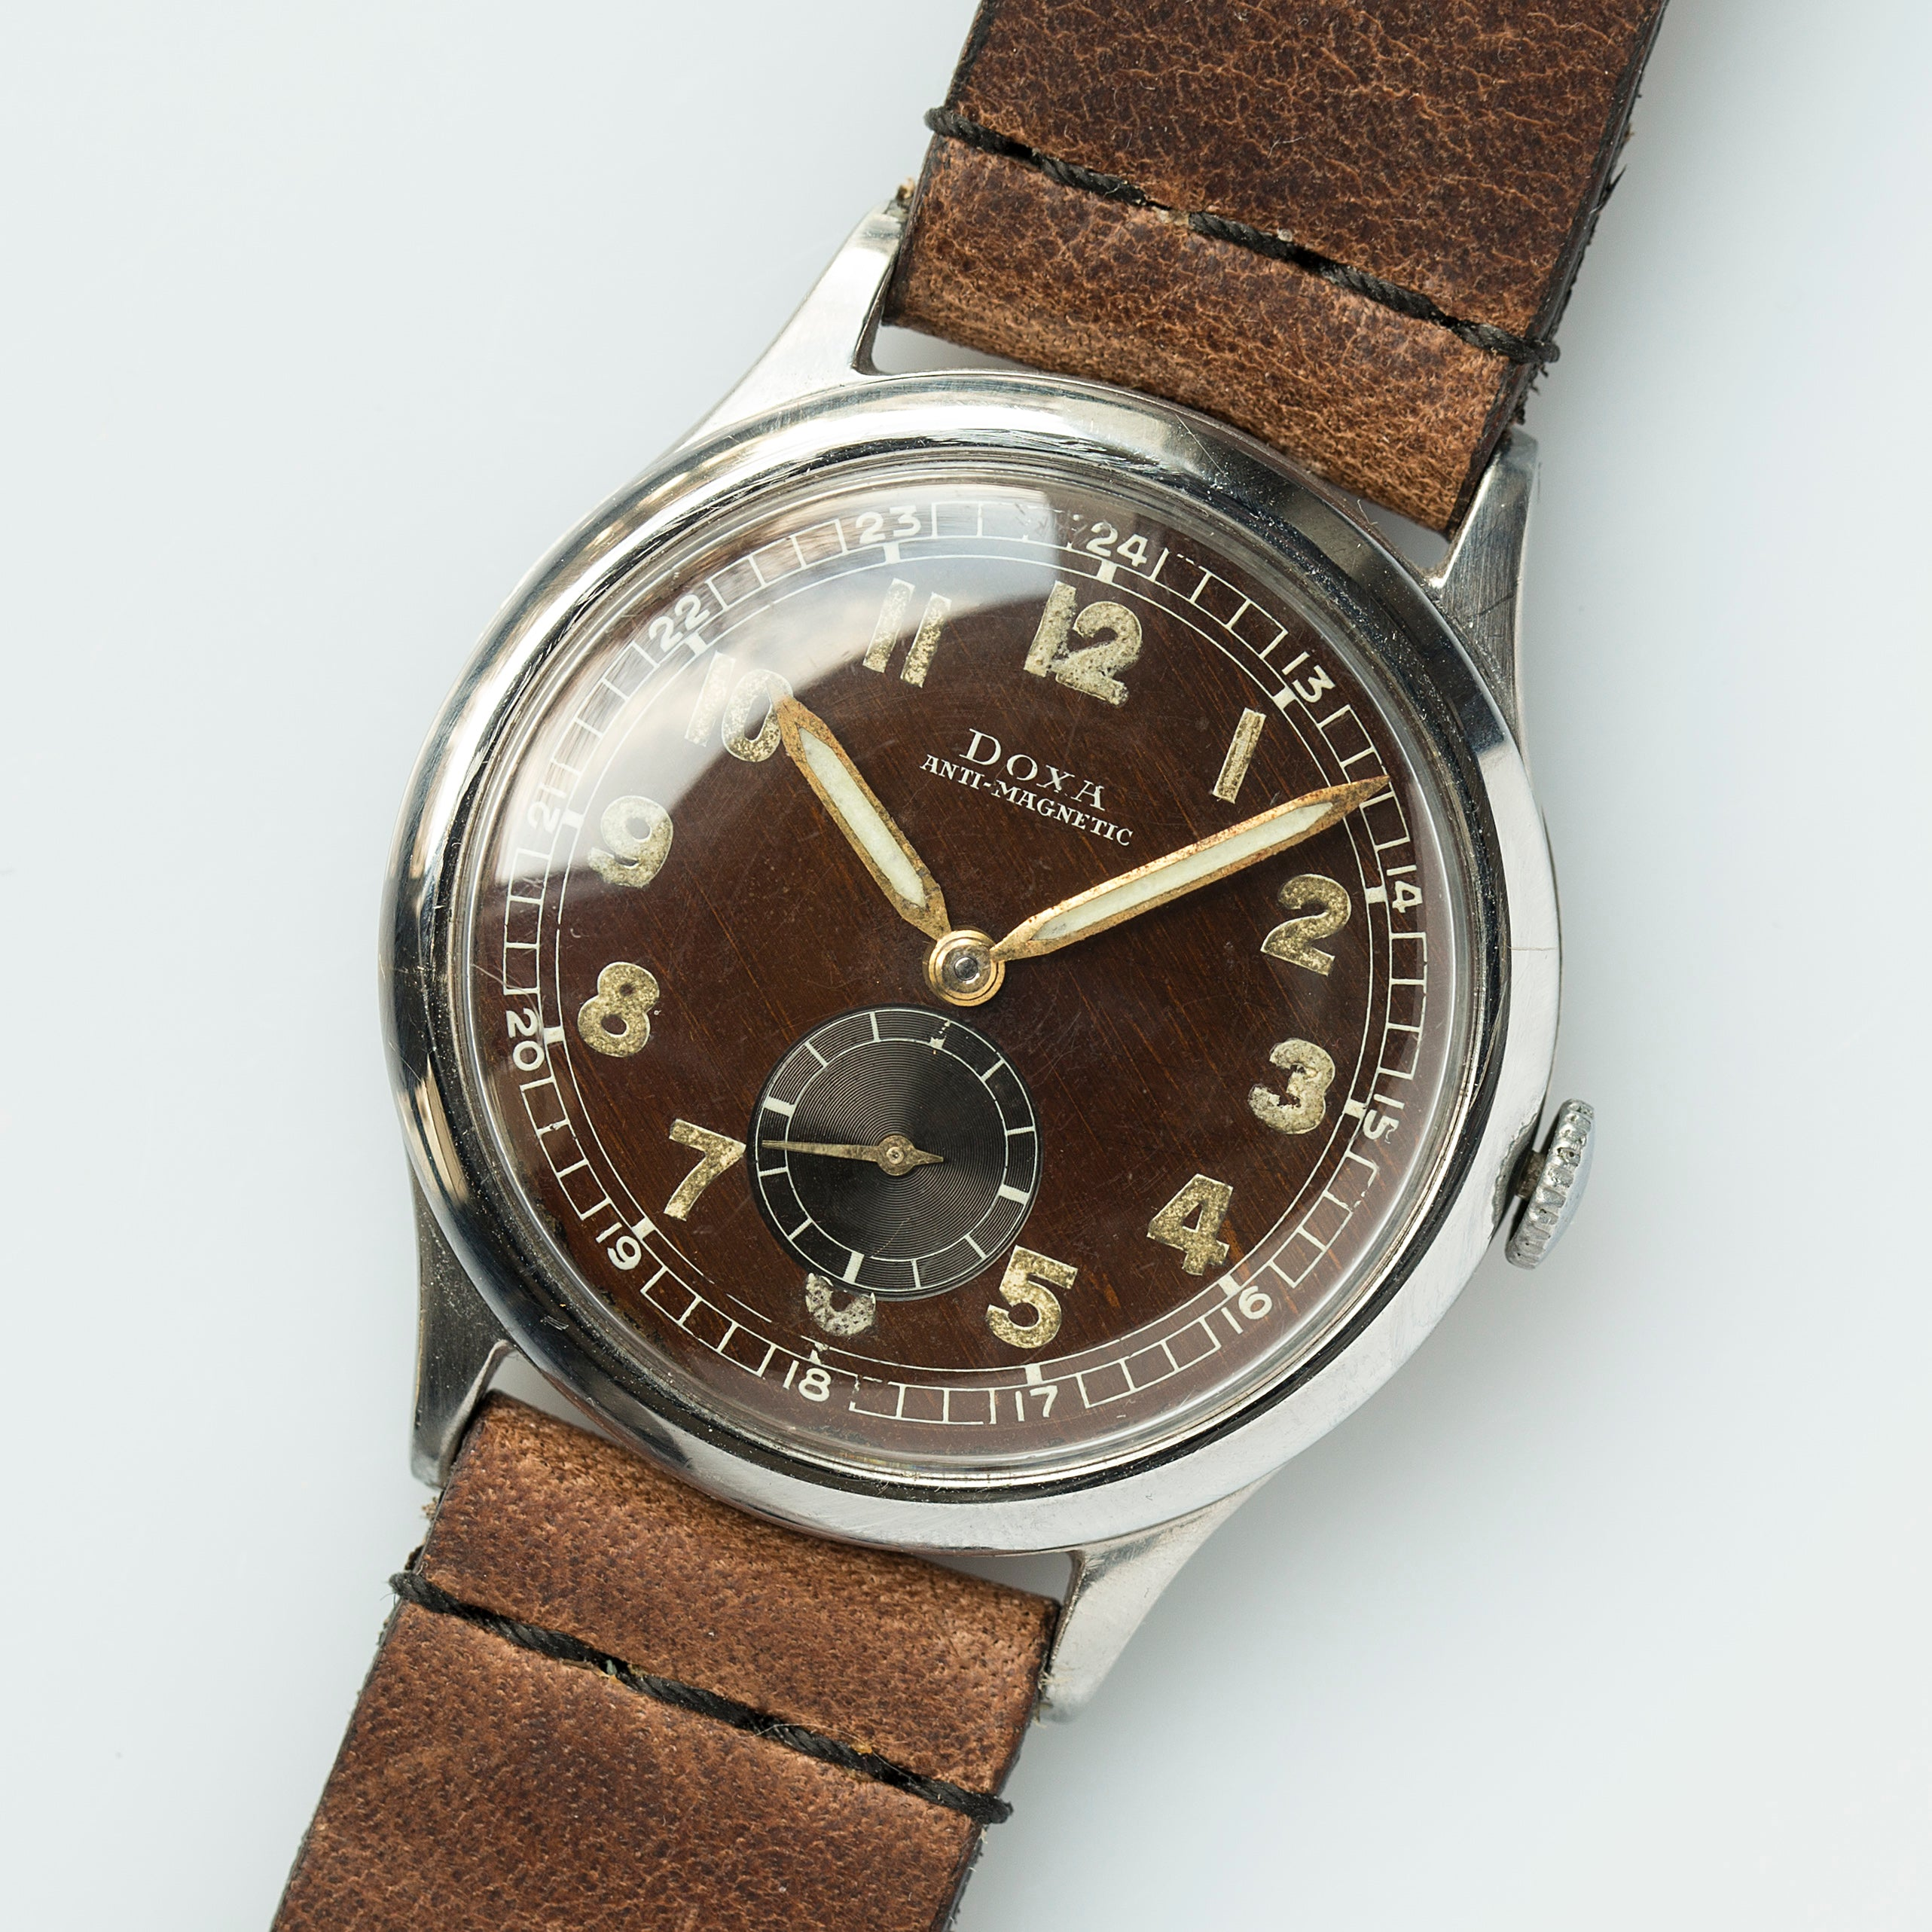 Raw View #6 - 1943 Doxa Military Tropical Dial